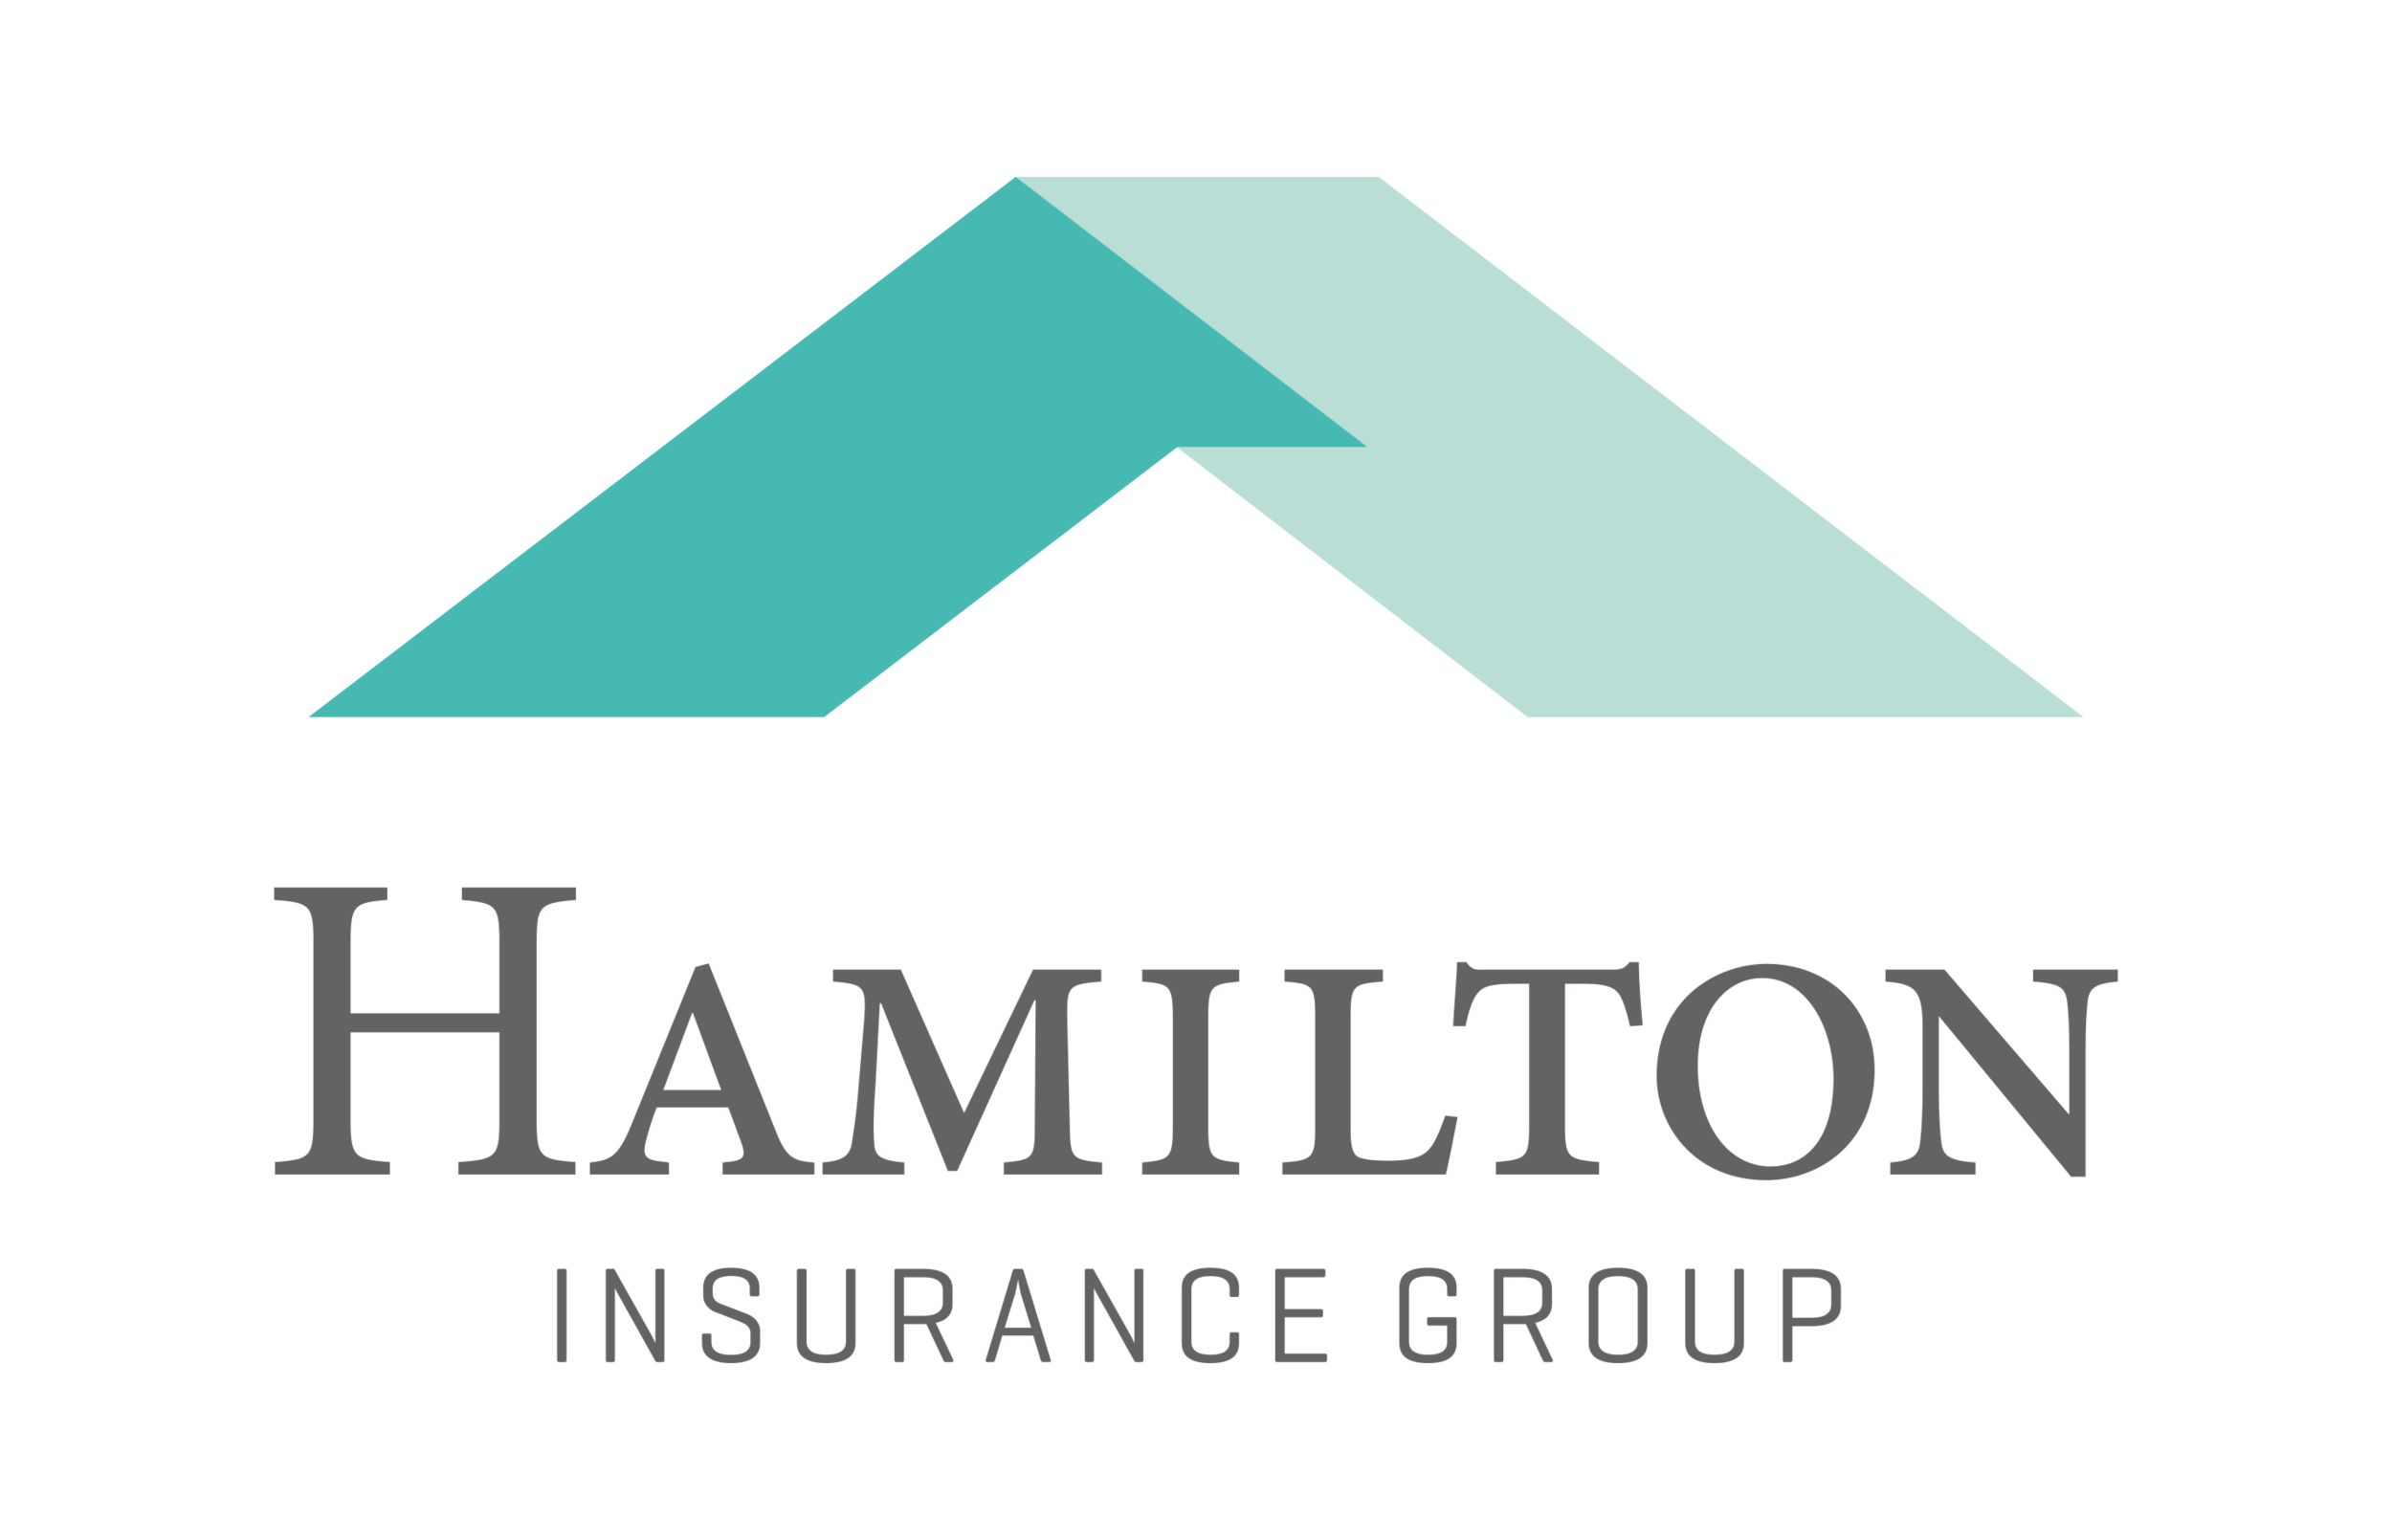 Hamilton Insurance Group eps.png